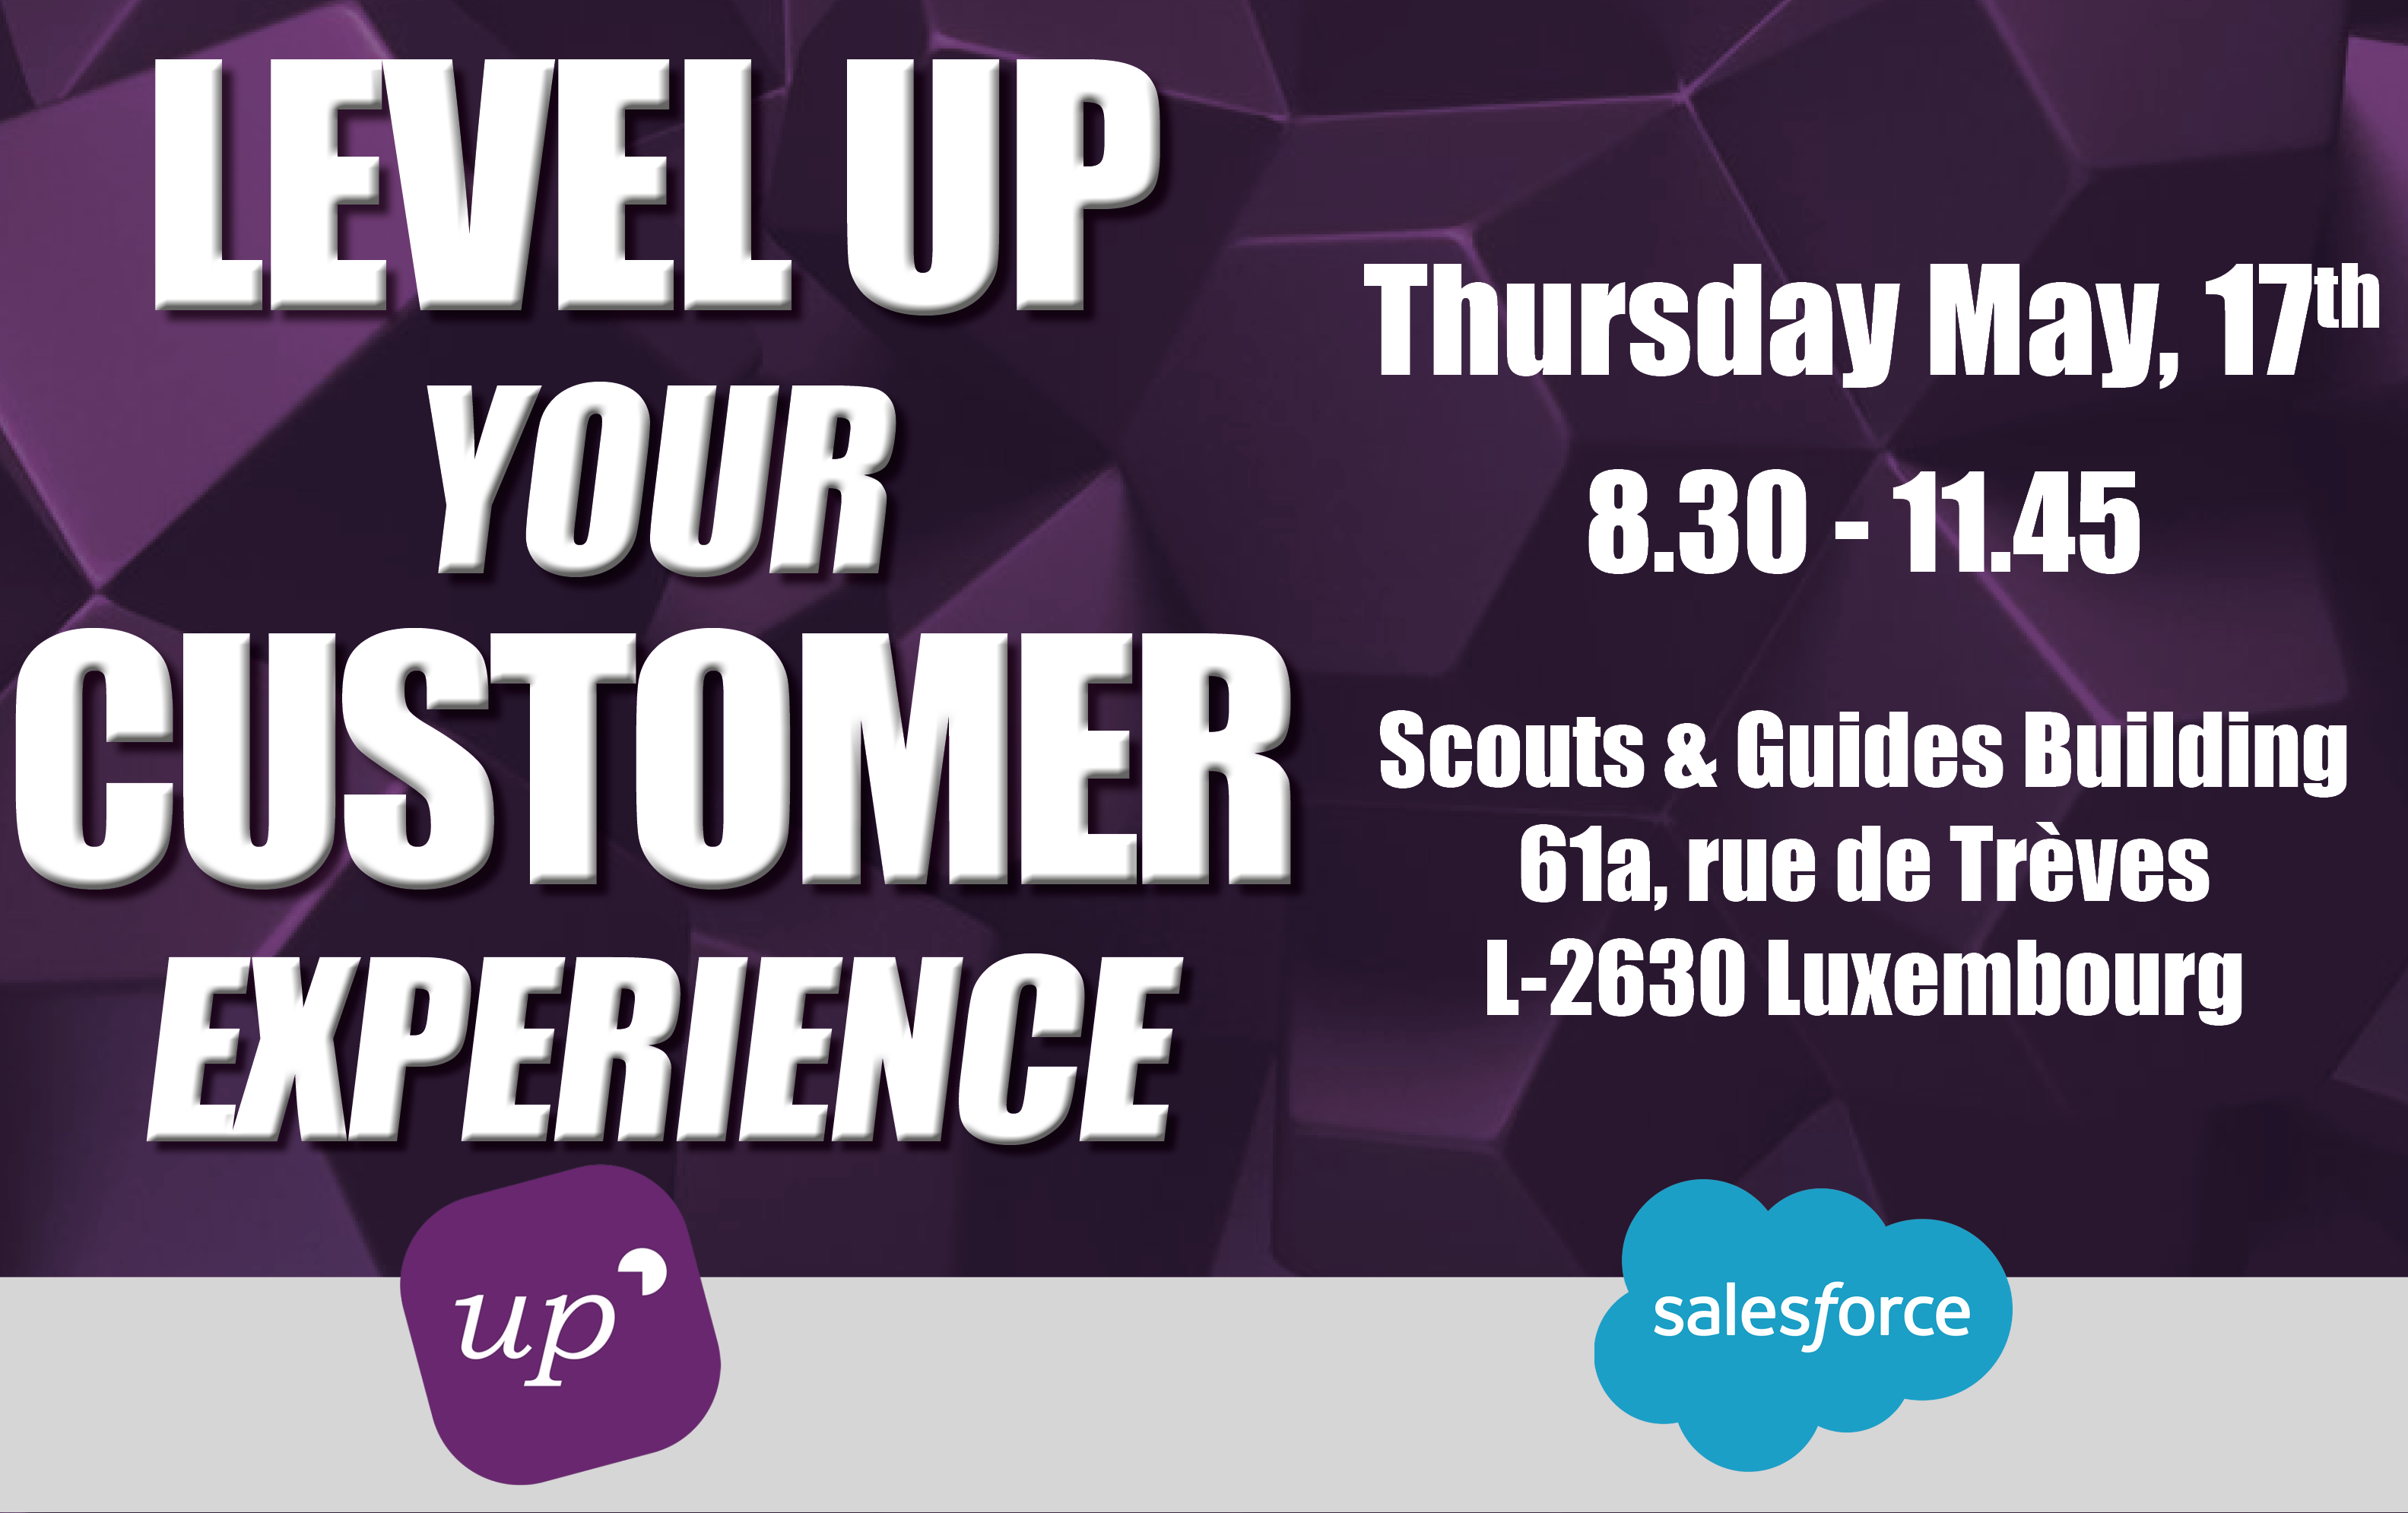 UpCRM & Salesforce Event May, 17th